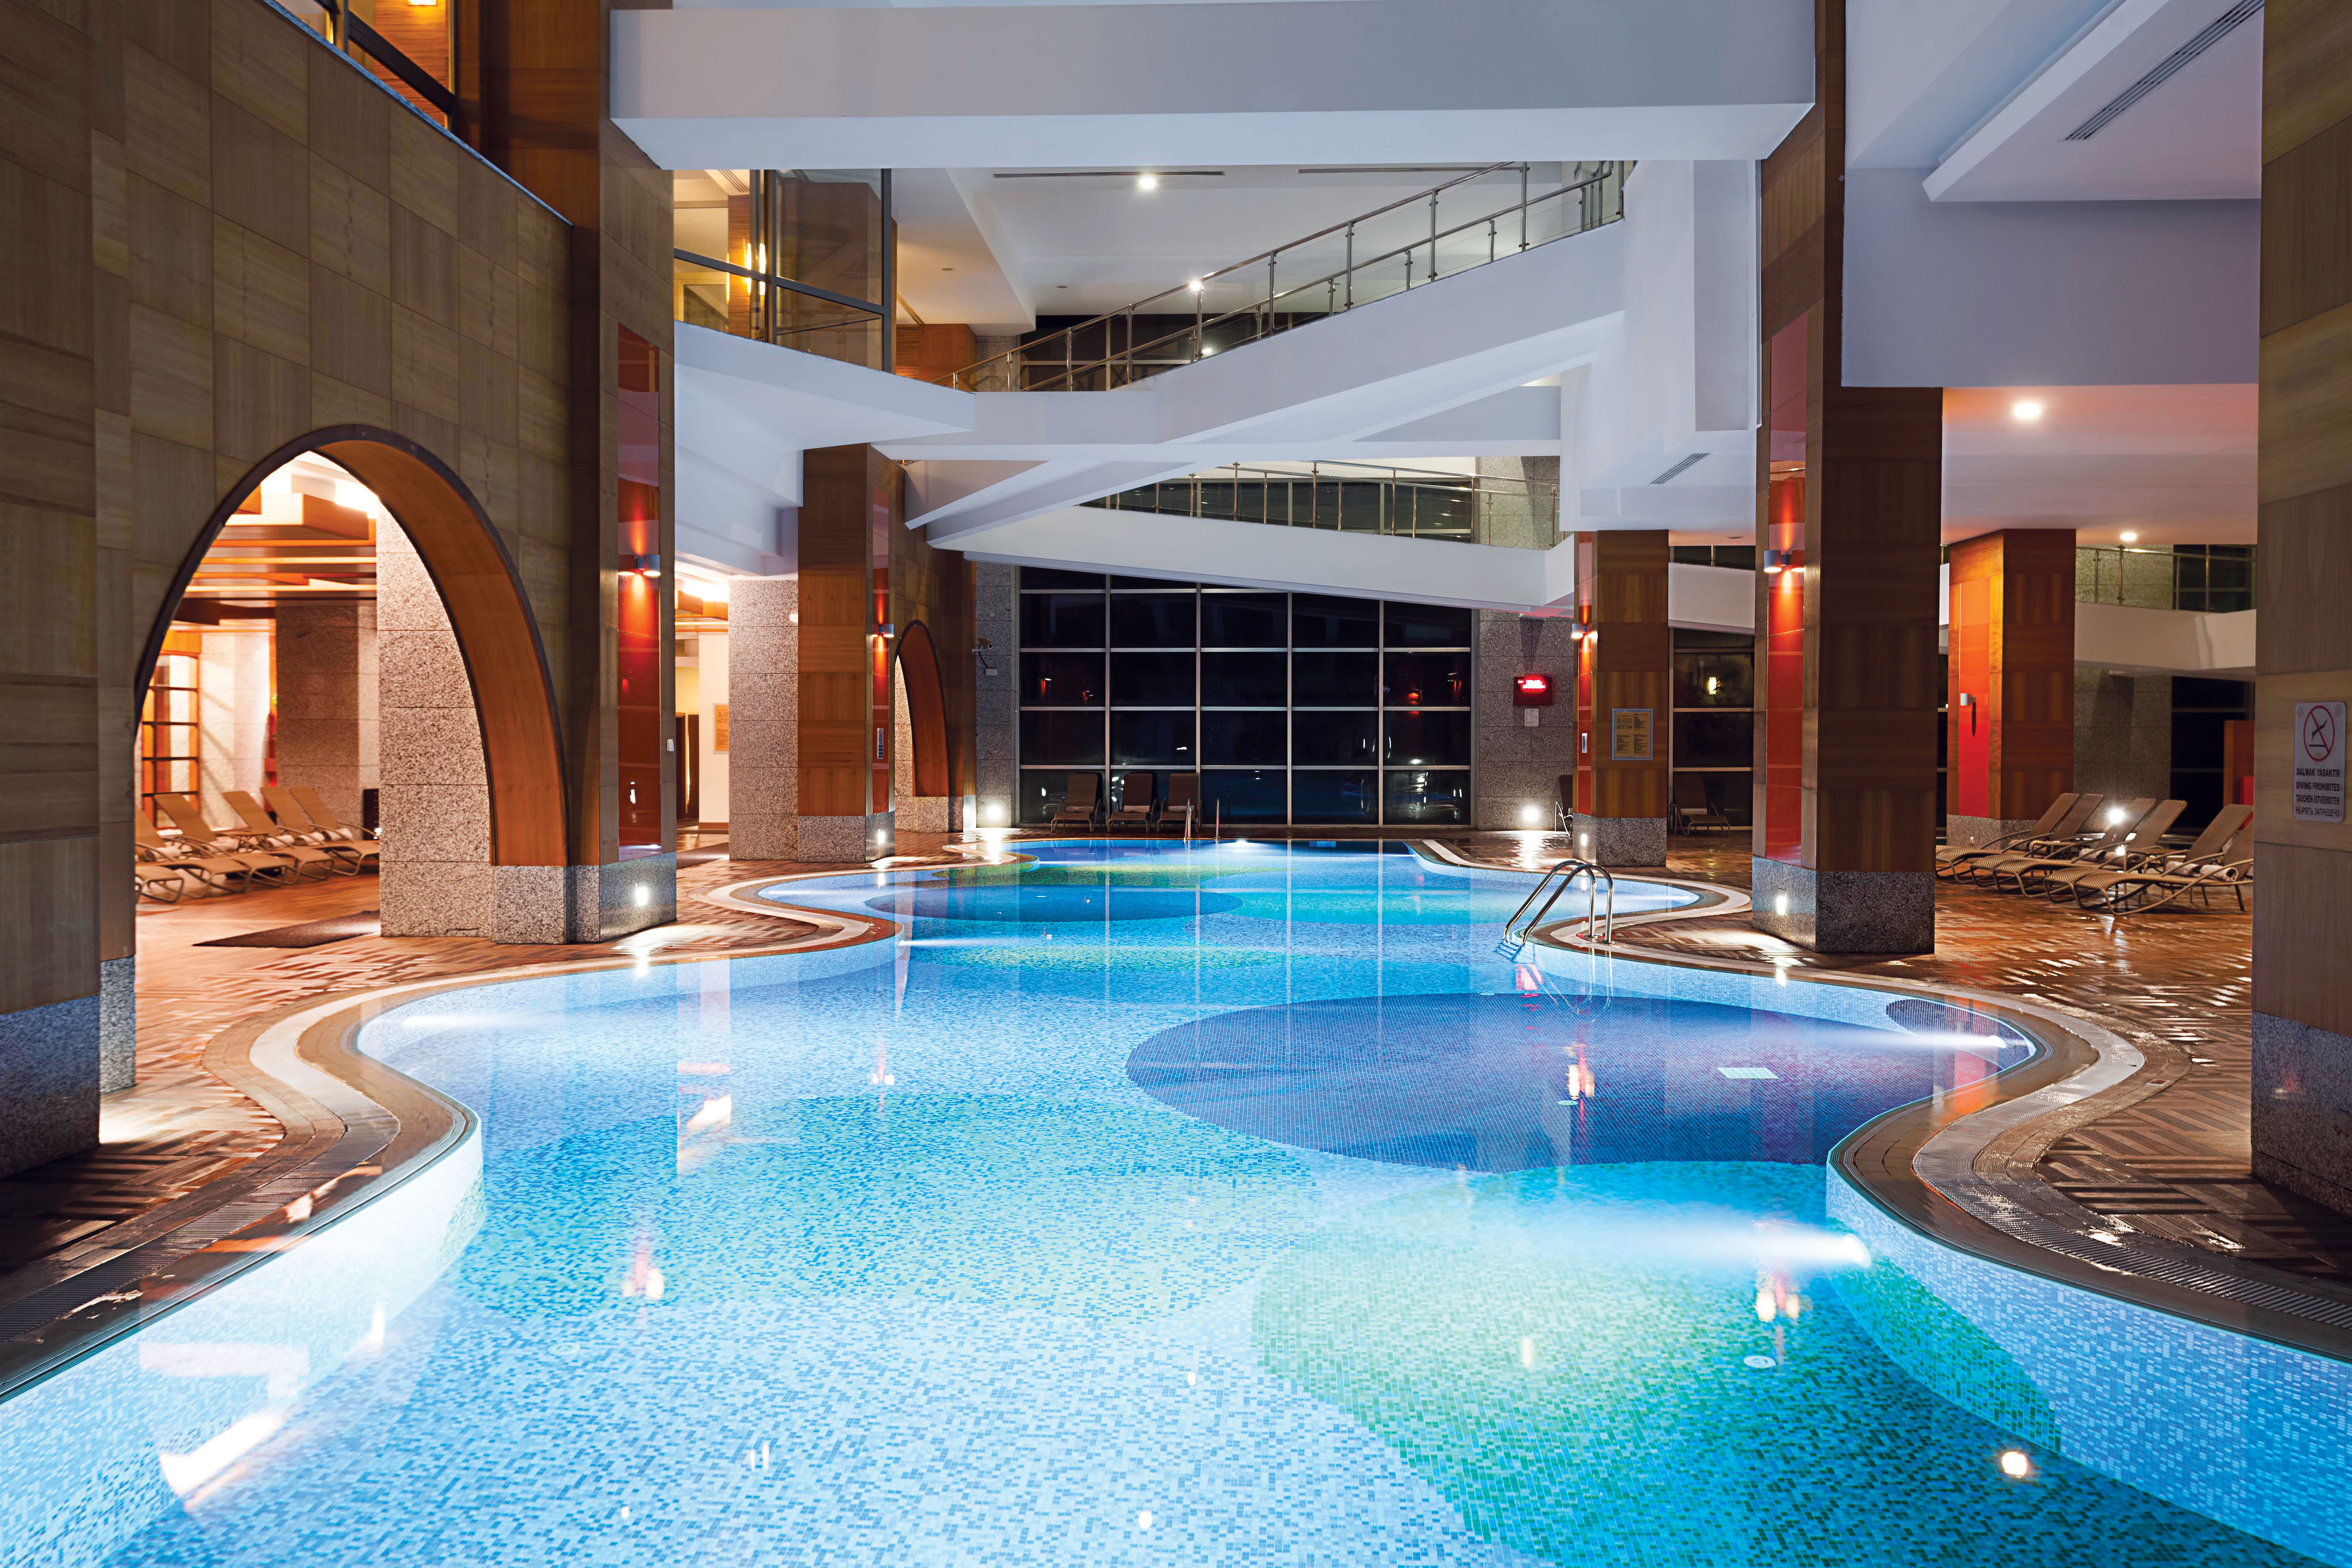 Rh_Sungate_Indoor_Pool